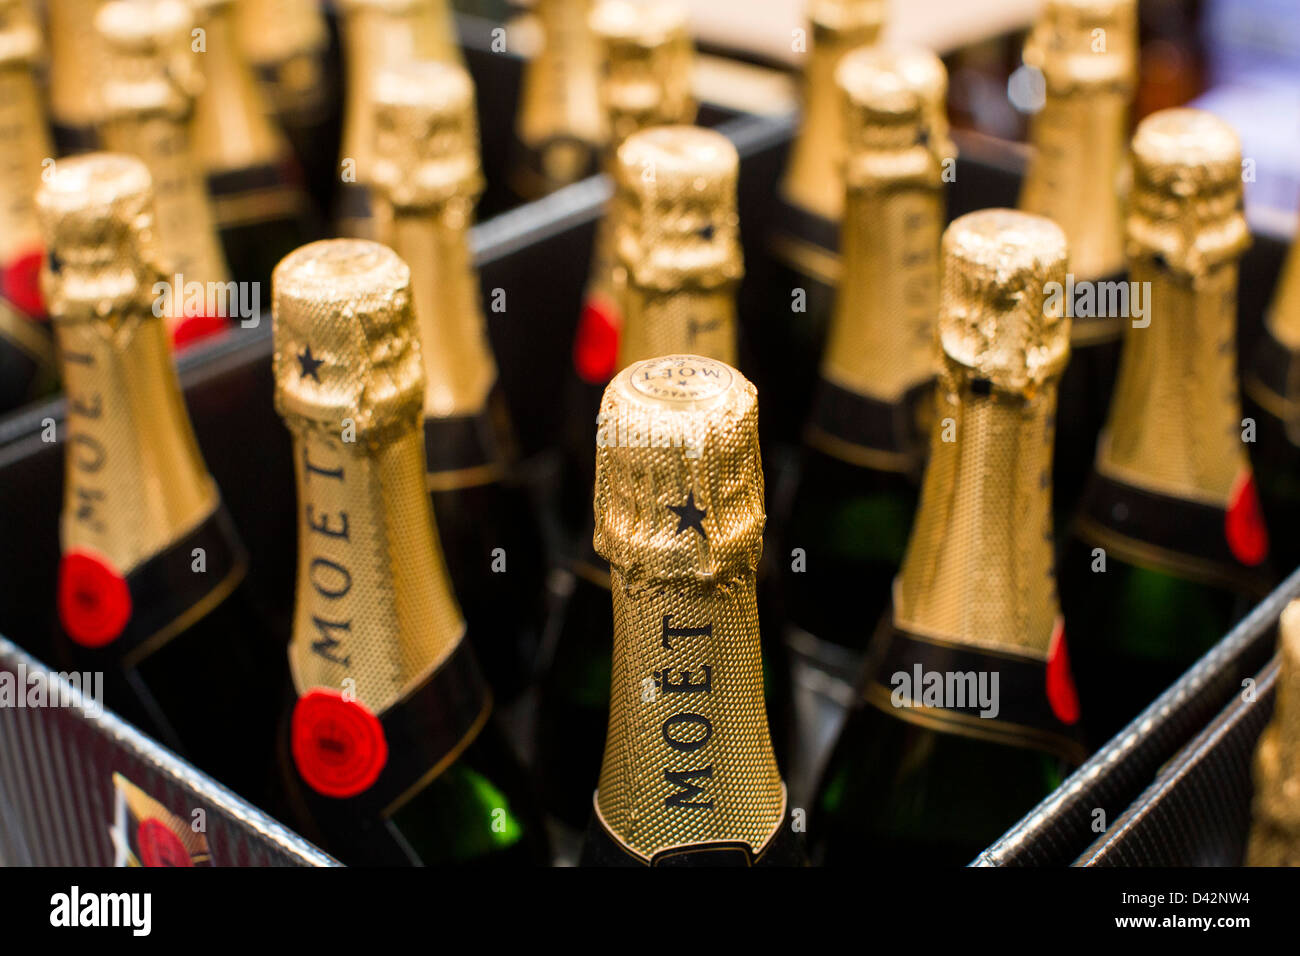 Moet champagne on display at a costco wholesale warehouse club stock moet champagne on display at a costco wholesale warehouse club stock photo 54150800 alamy thecheapjerseys Images